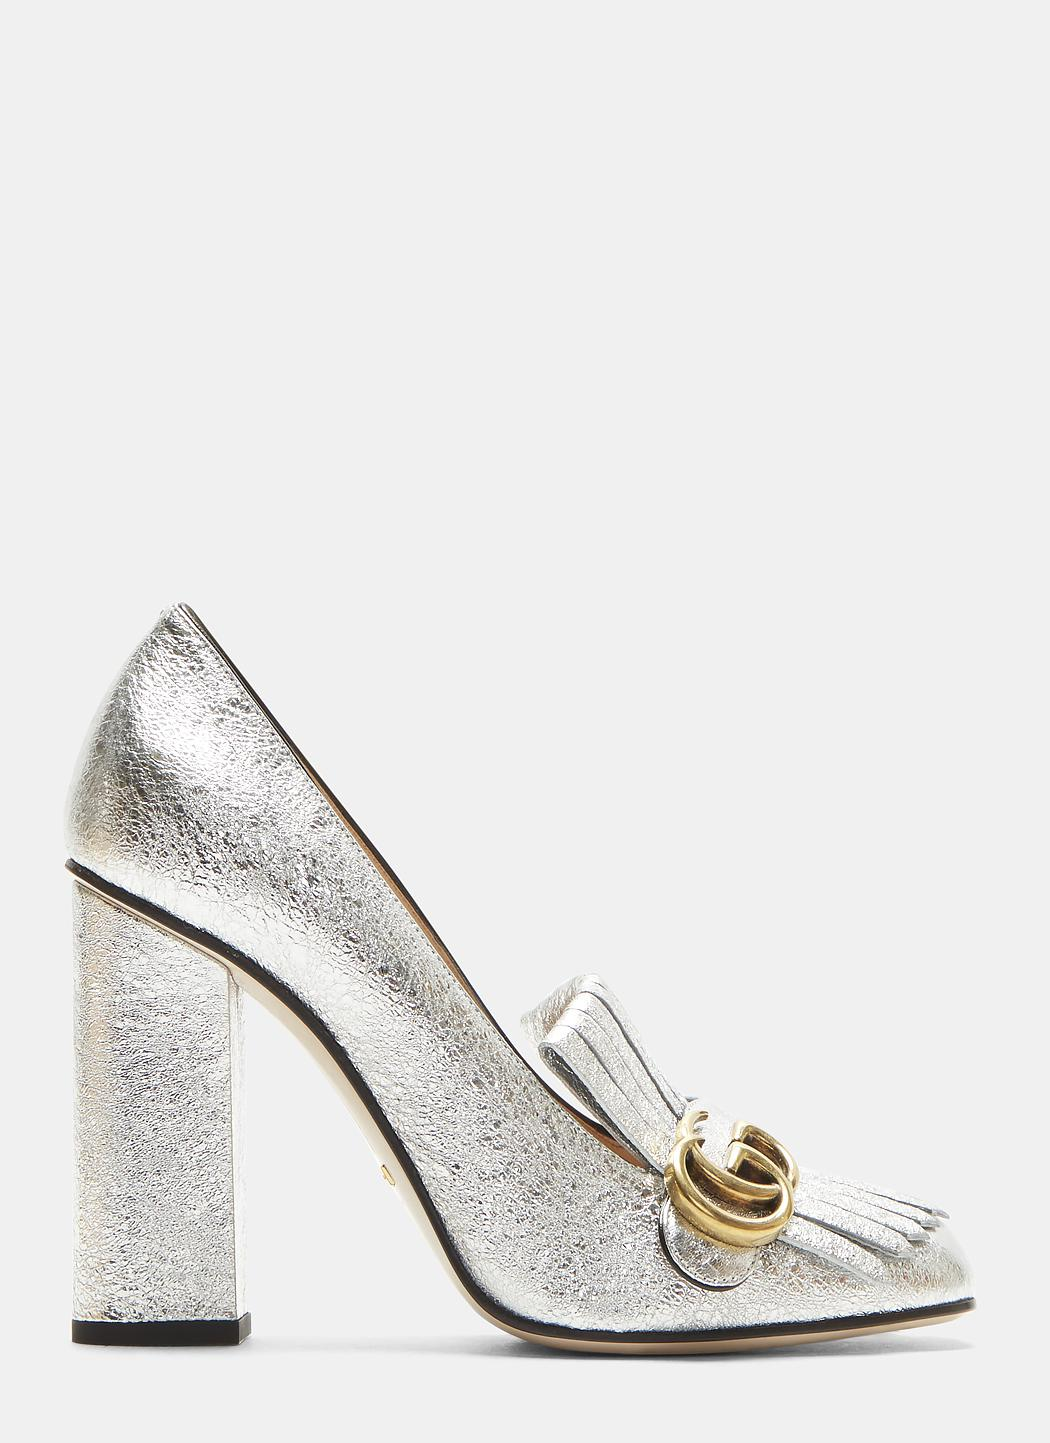 417302805a9 Lyst - Gucci GG High-heel Fringed Marmont Pumps In Silver in Metallic